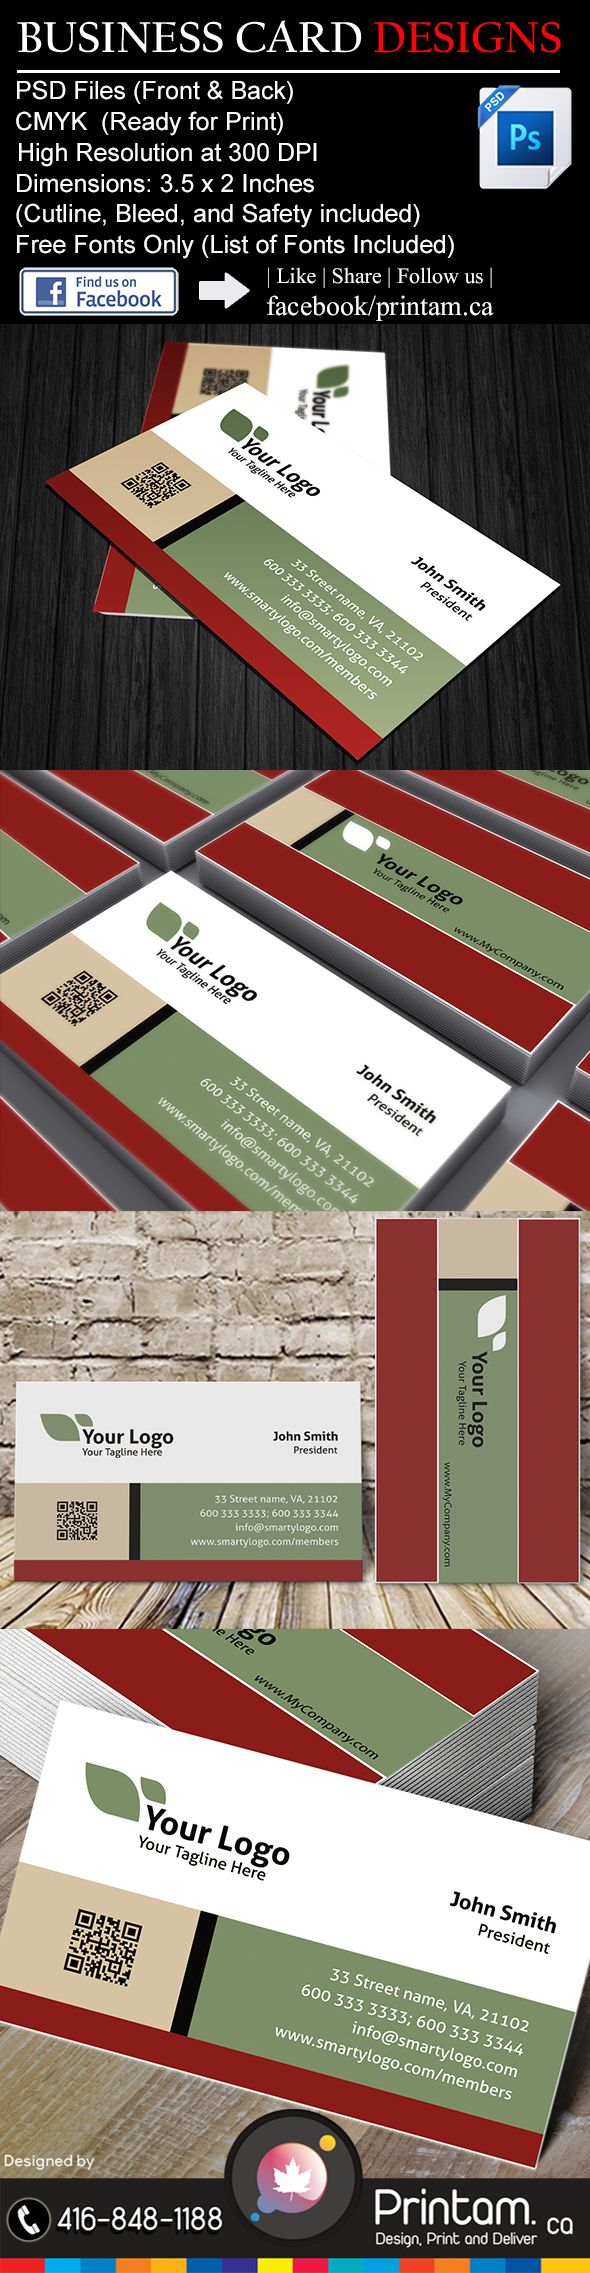 7 best Health Care - Business Card Designs images on Pinterest ...